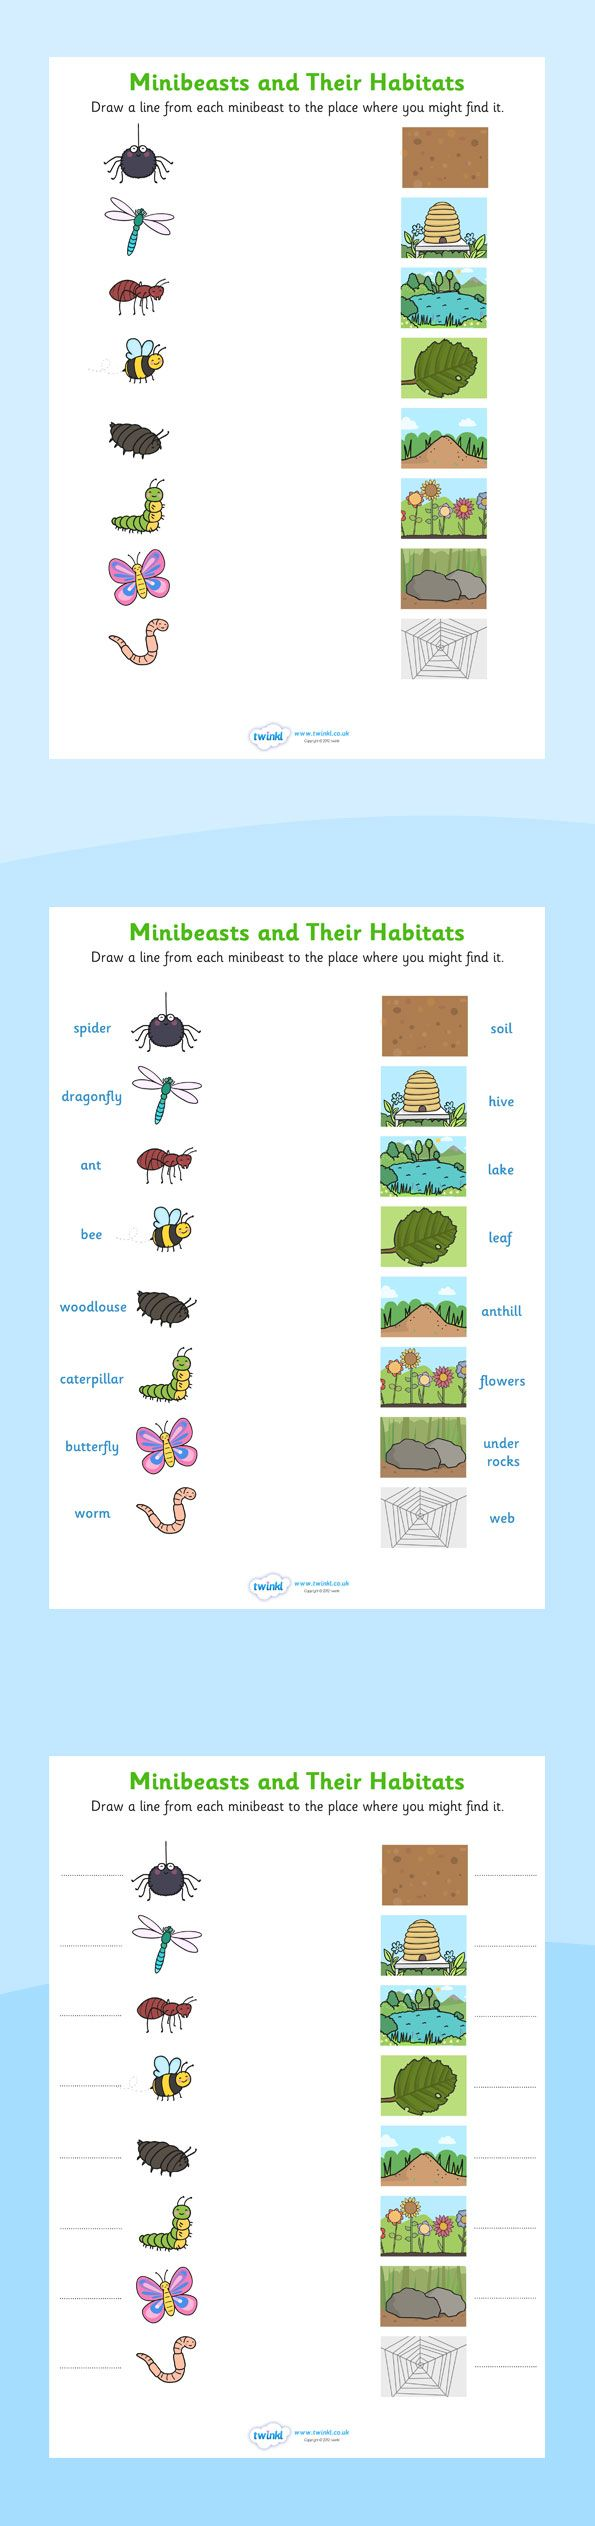 * Habitats- Minibeasts and their habitats worksheets